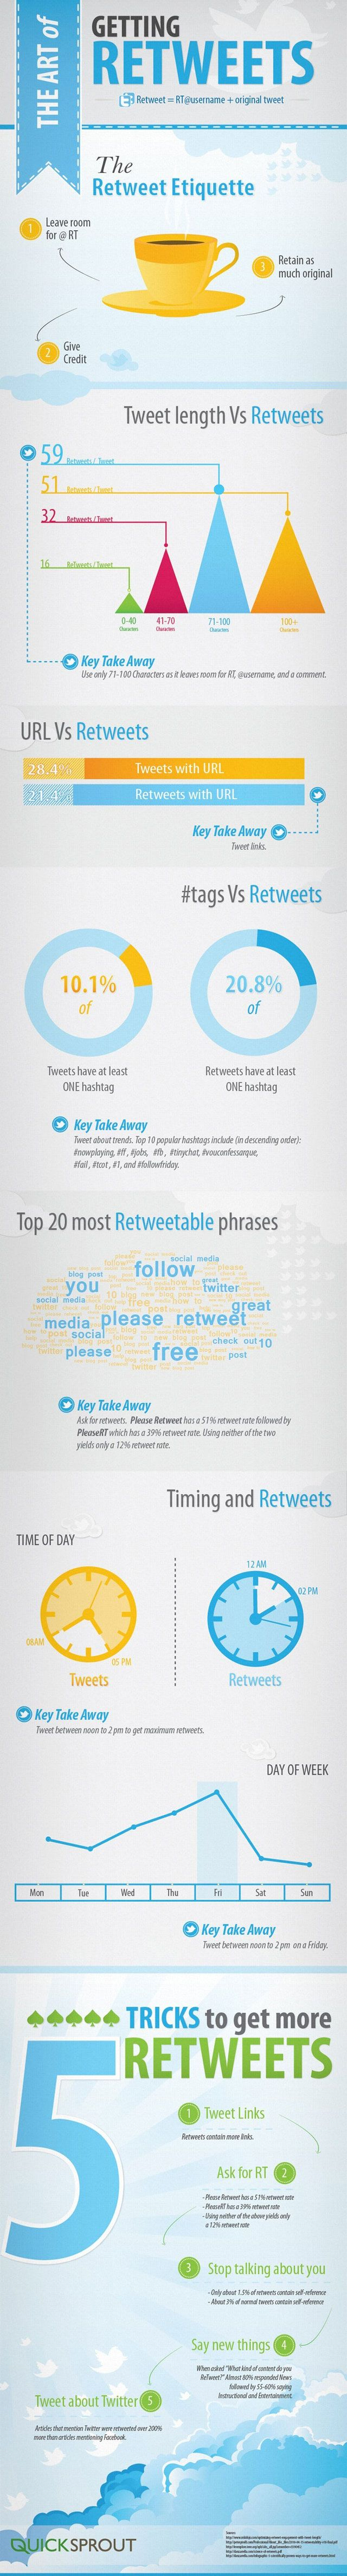 The Art of Getting Retweets  (2013) by Shortstack